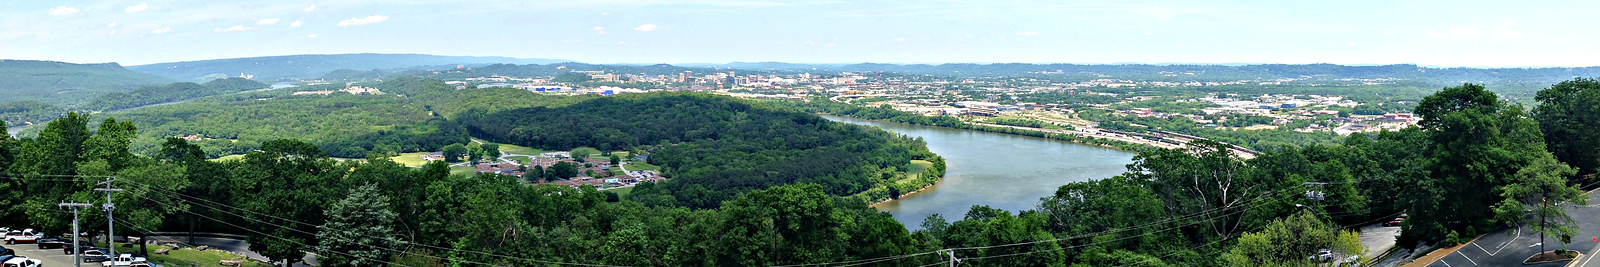 Looking north from Ruby Falls observation tower on Lookout Mountain - Moccasin Bend, Tennessee River and Chattanooga.